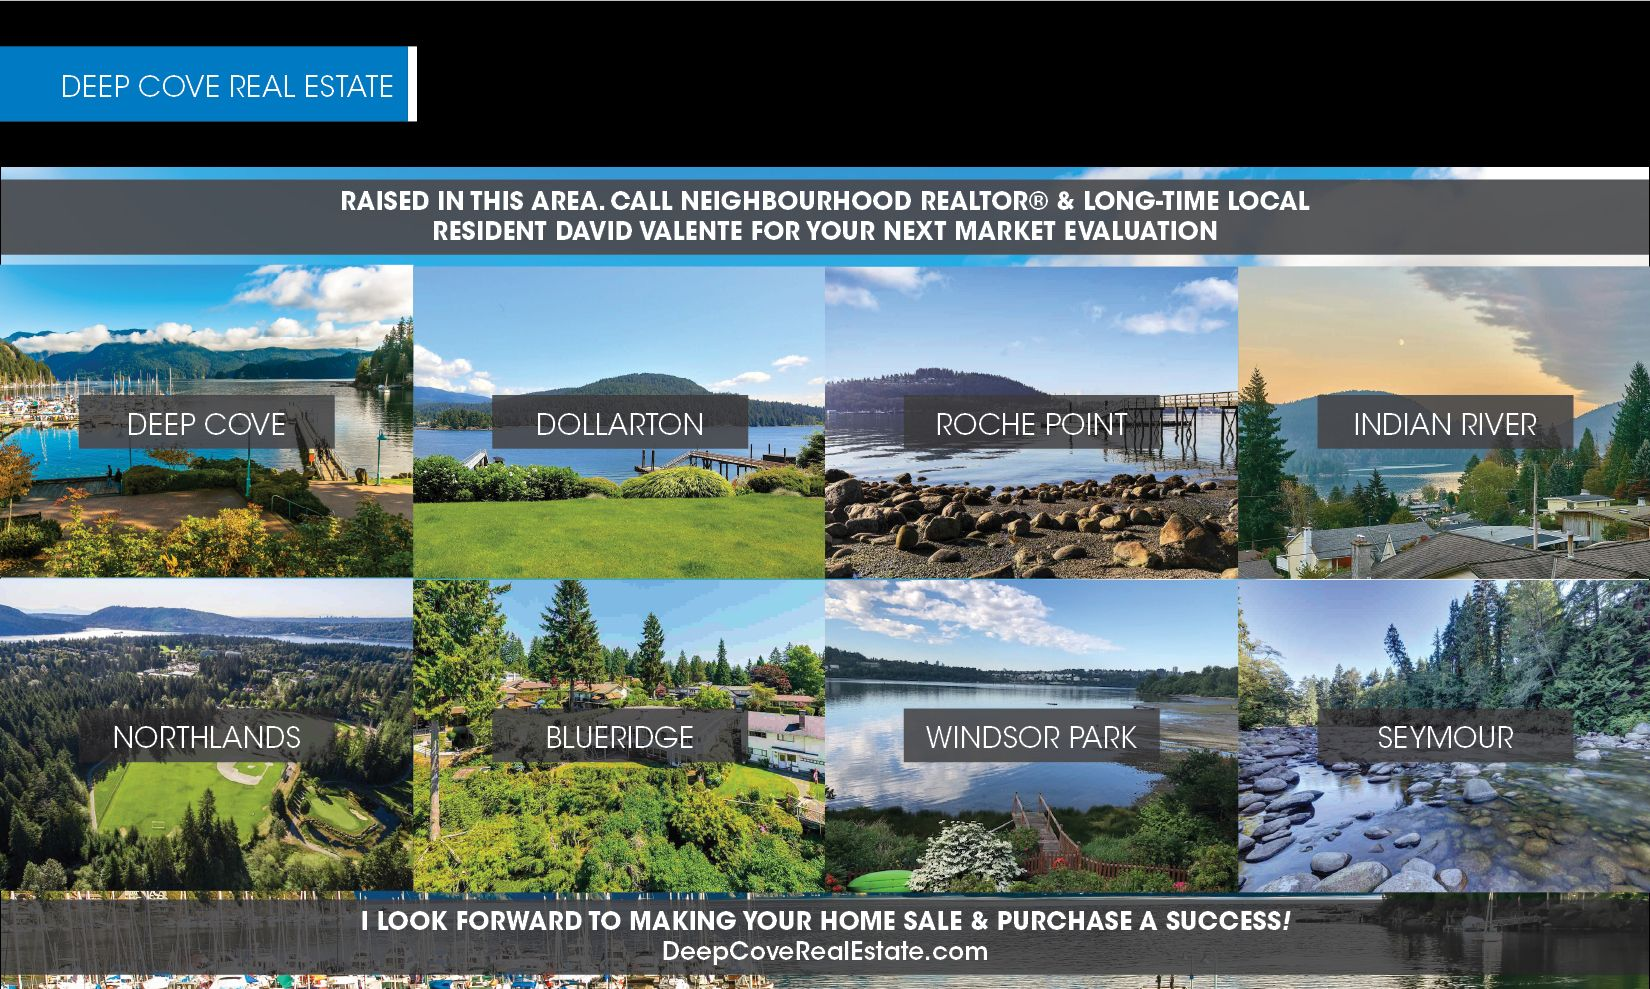 Deep Cove Real Estate - Realtor David Valente - Listings - Sold - Deep Cove - Dollarton - Roche Point - Indian River - Northlands - Blueridge - Windsor Park - Seymour - Homes For Sale